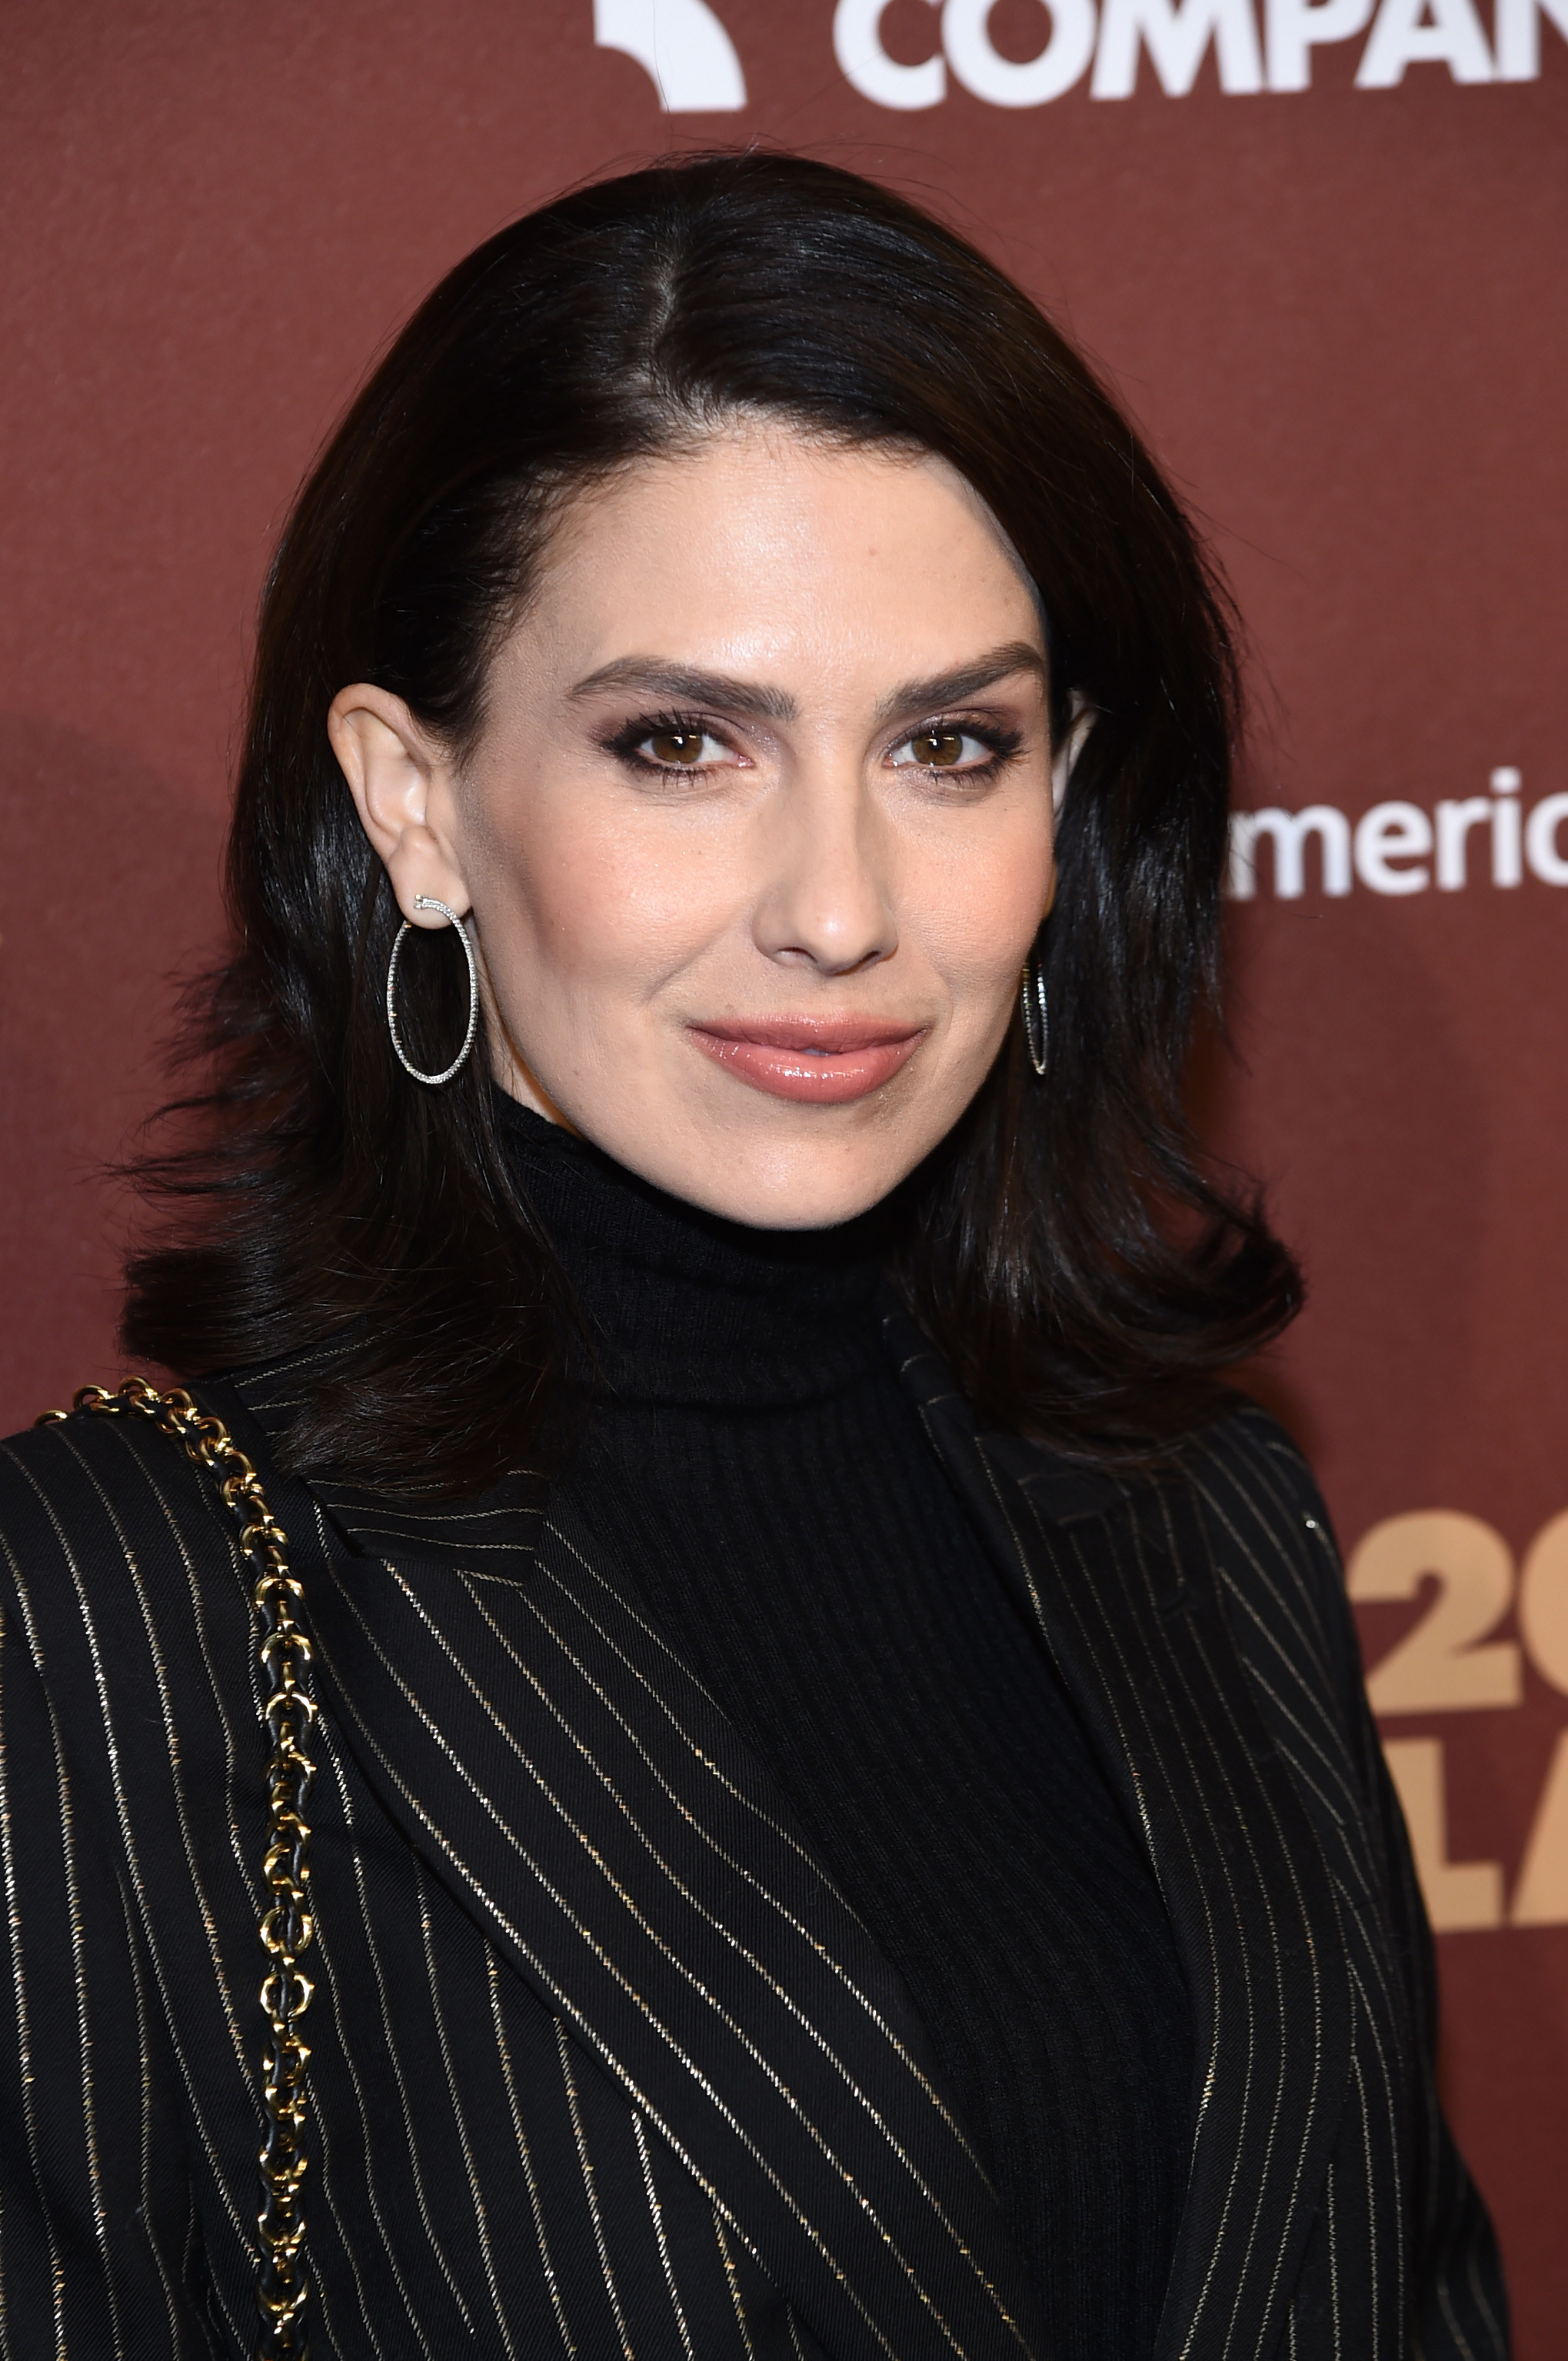 Hilaria Baldwin attends the Roundabout Theater's 2020 Gala at The Ziegfeld Ballroom on March 02, 2020 in New York City